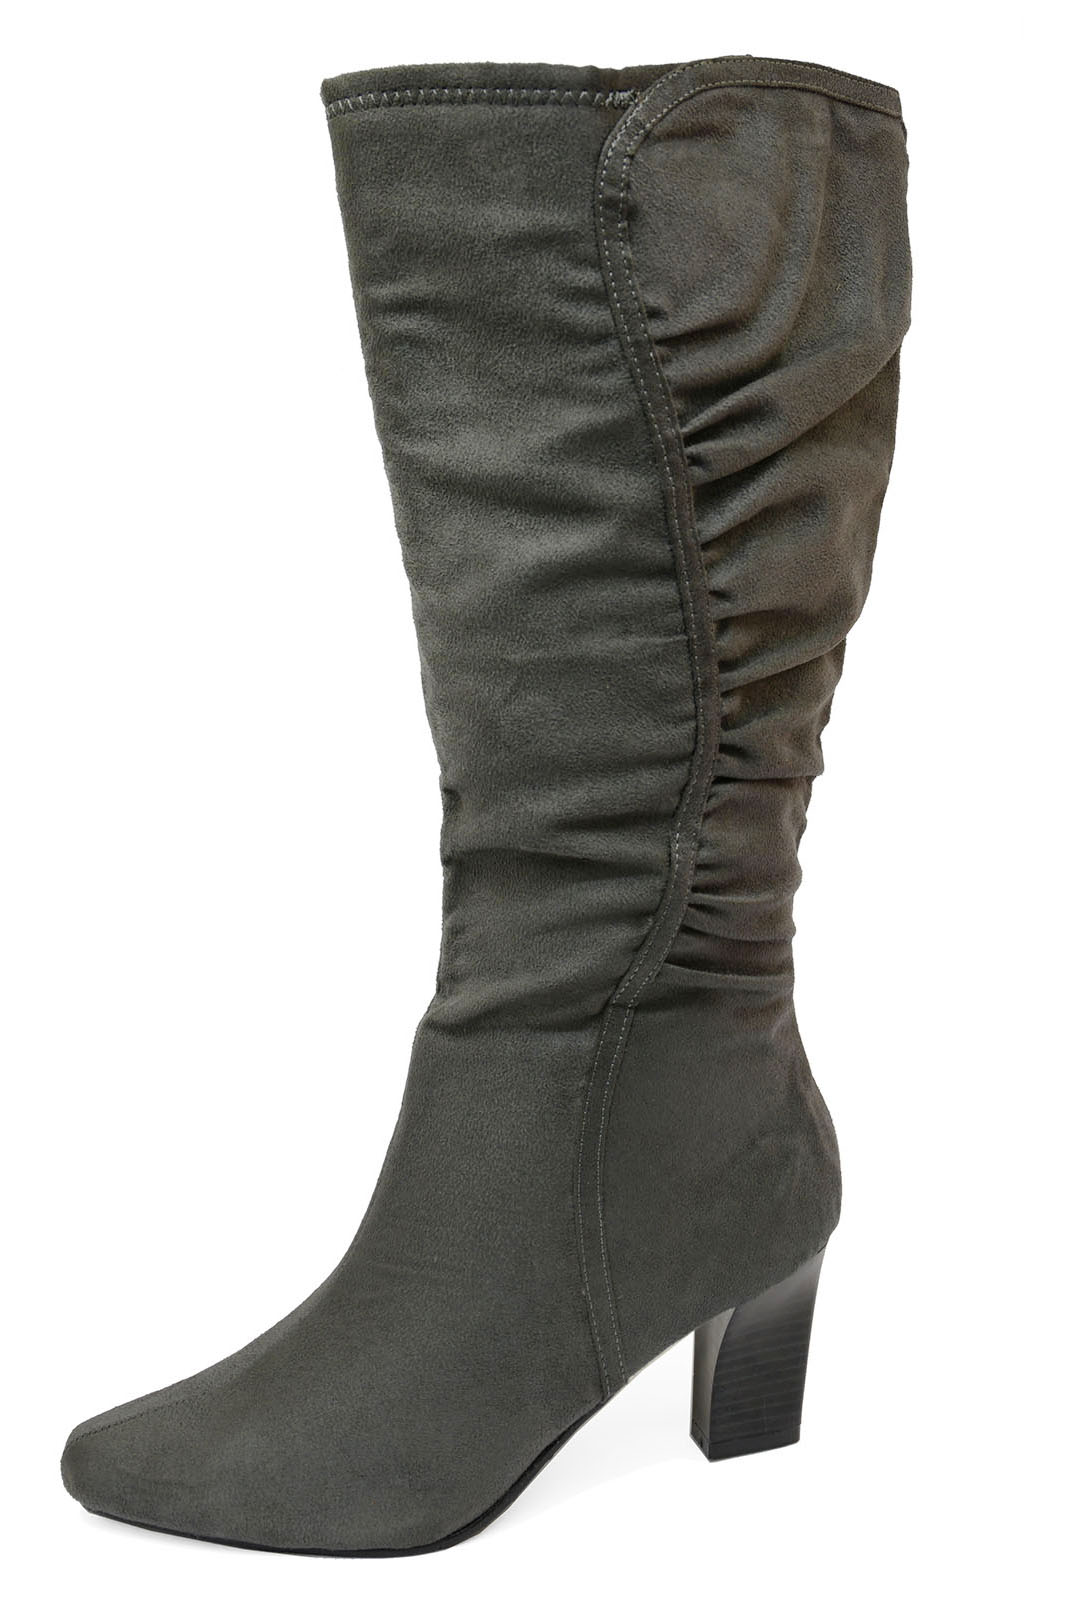 WOMENS GREY LOW-HEEL WIDE-CALF TALL KNEE-HIGH WINTER BOOTS